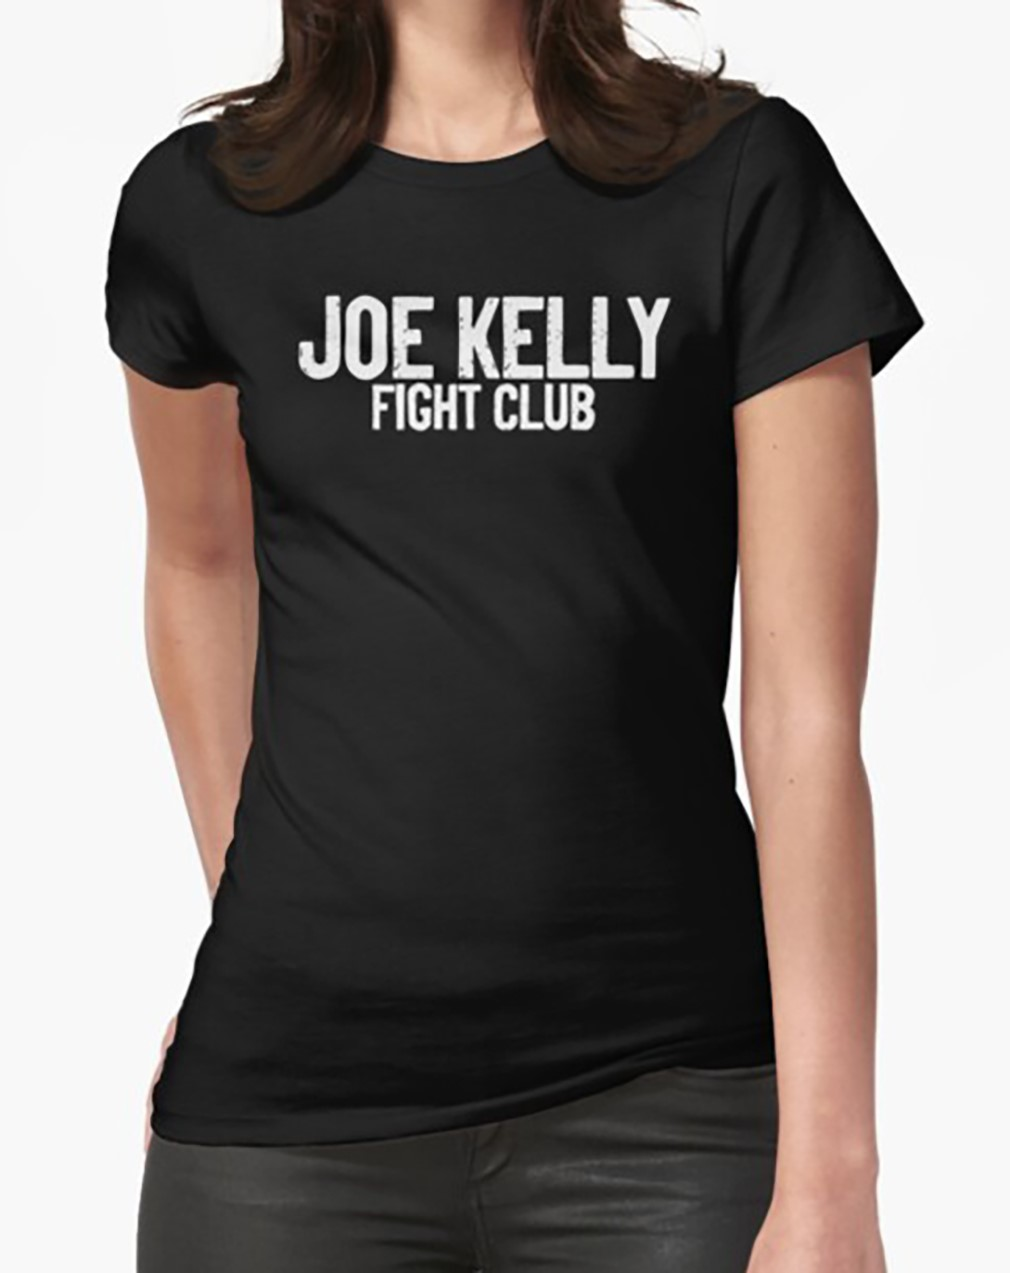 Joe Kelly Fight Club Shirt For Boston Fans